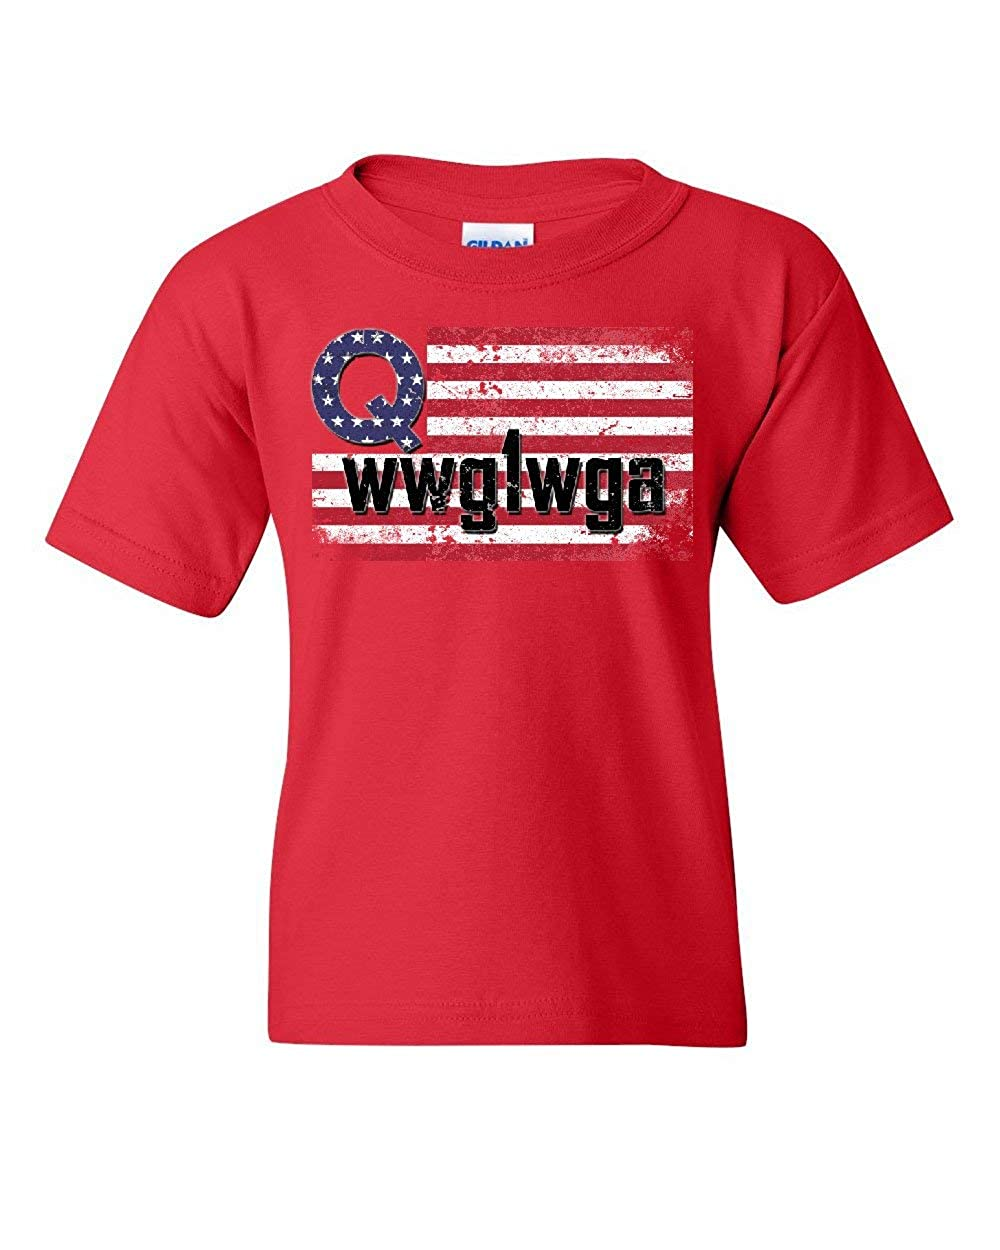 Distressed Q American Flag WWG1WGA Youth T-Shirt Deep State Patriotic Kids Tee